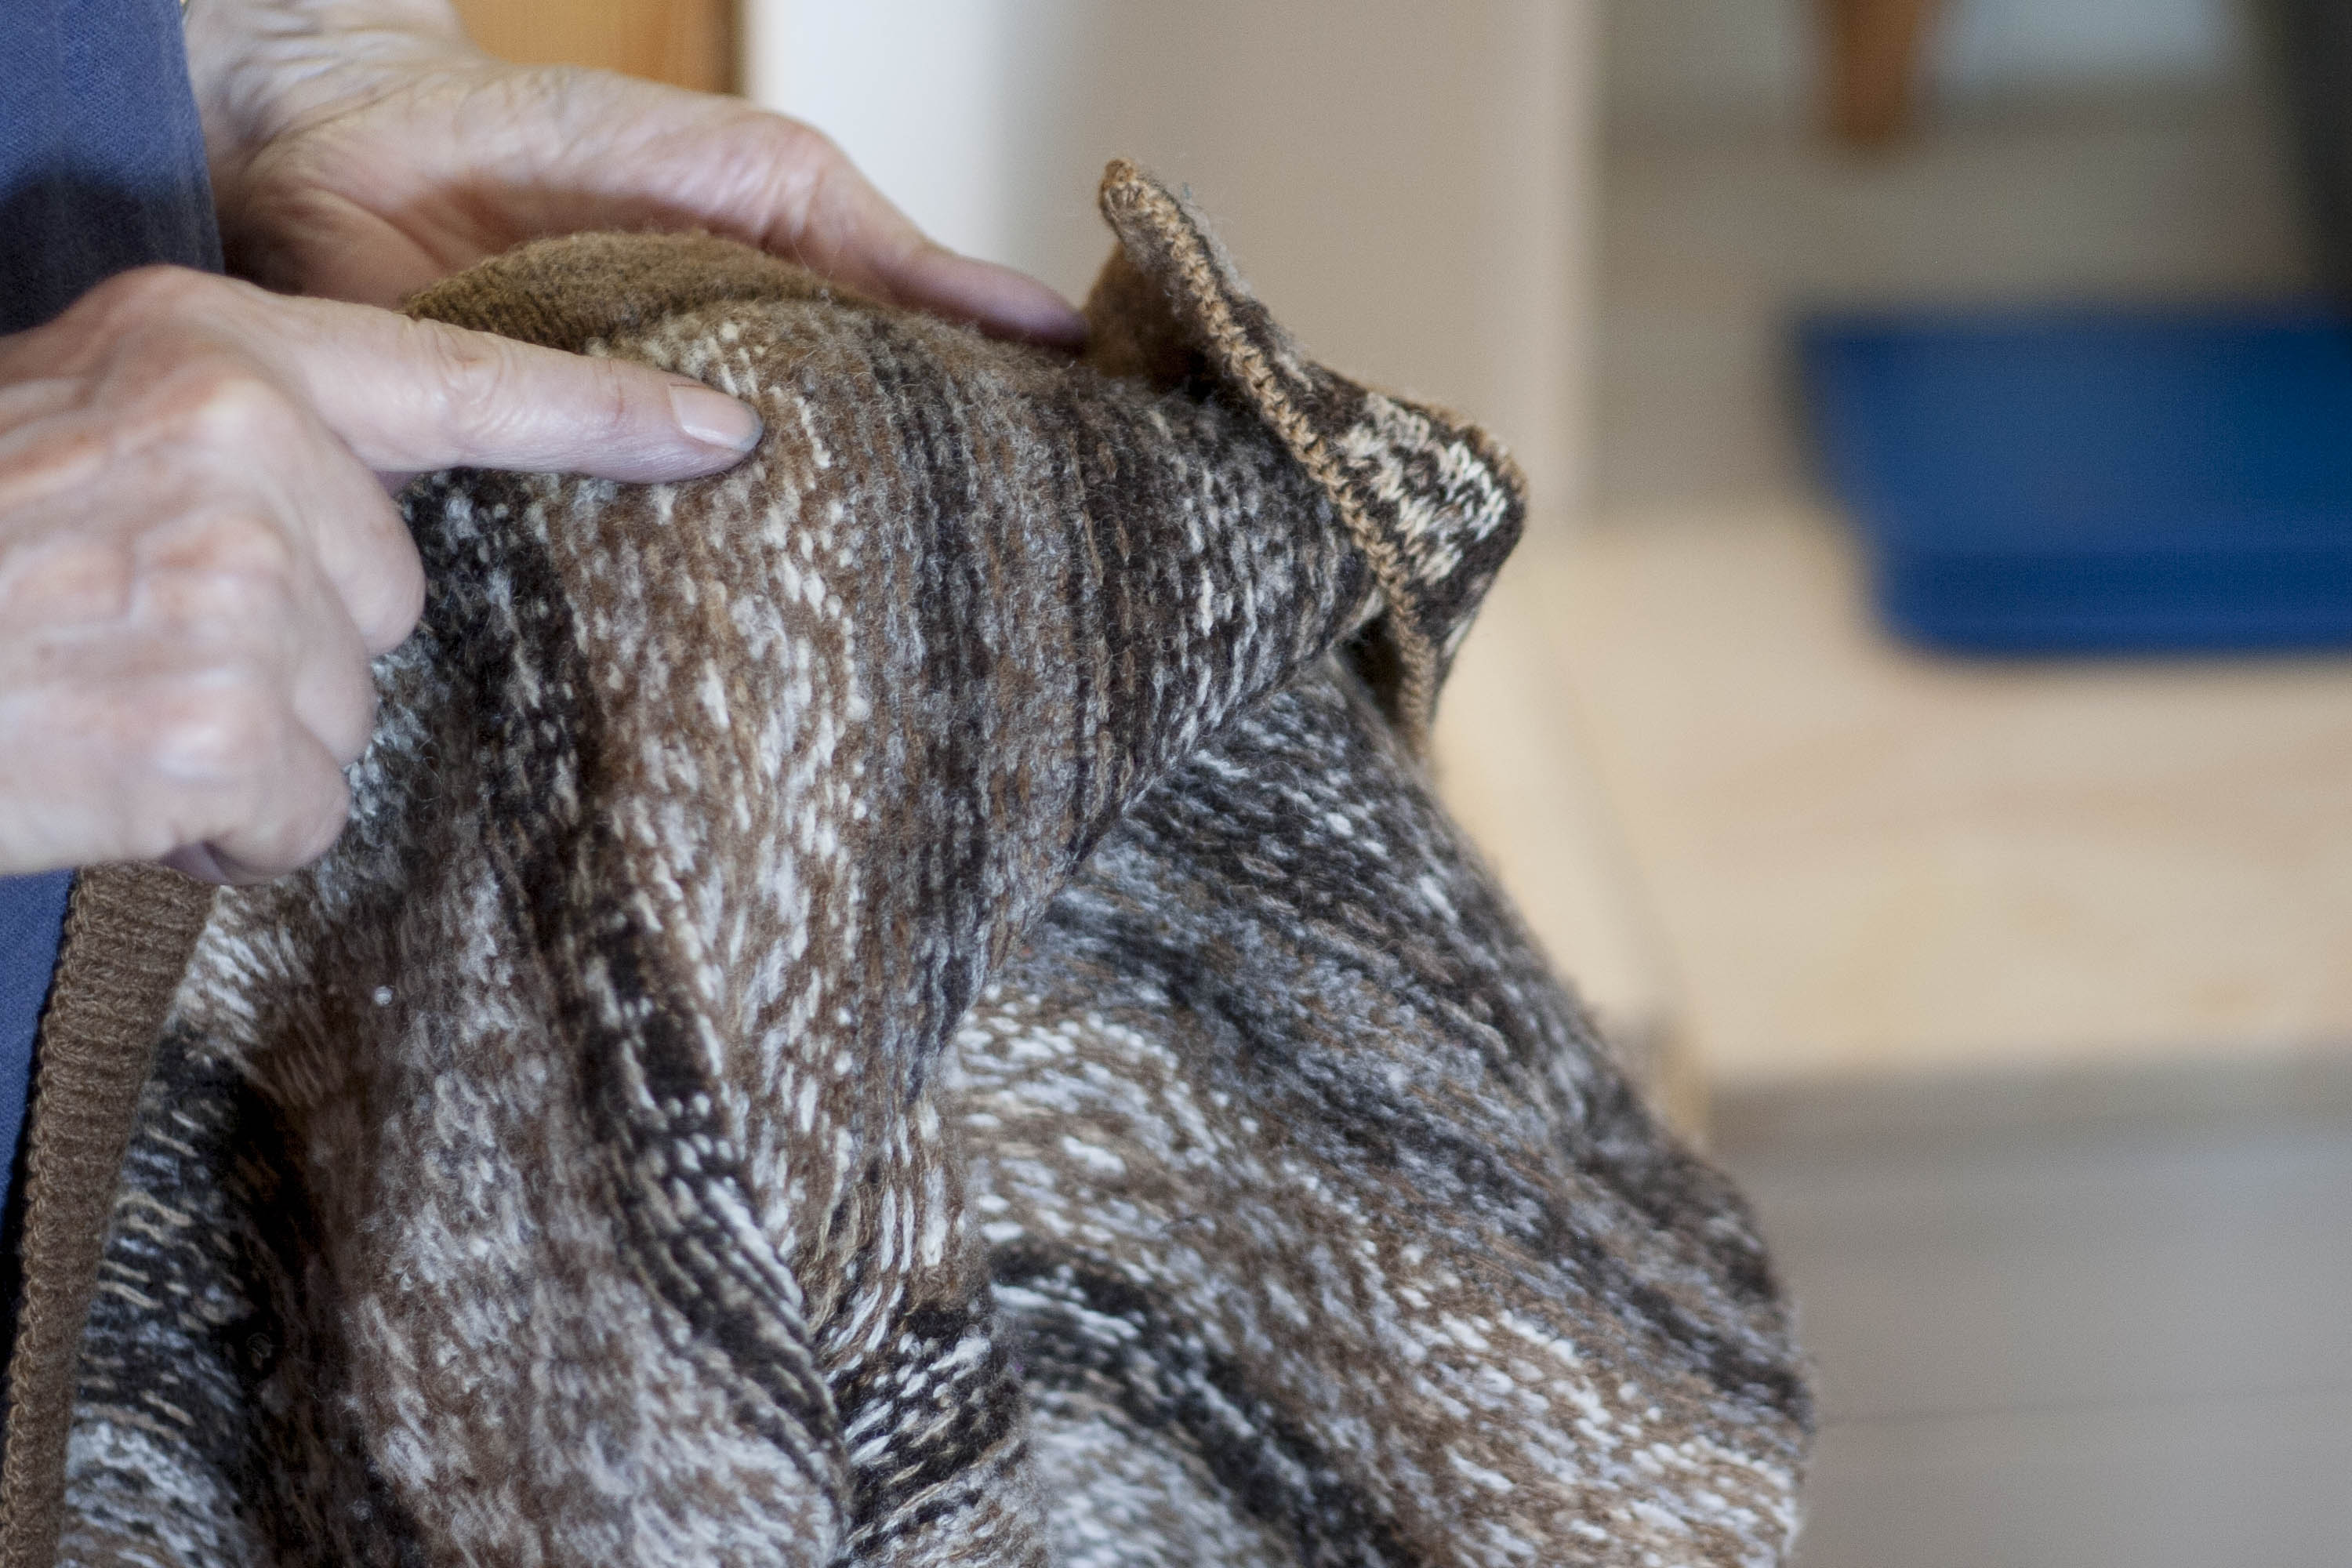 Elizabeth Johnston shows the reverse of her Fair Isle cardigan, knitted with her own handspun, natural coloured Shetland yarn